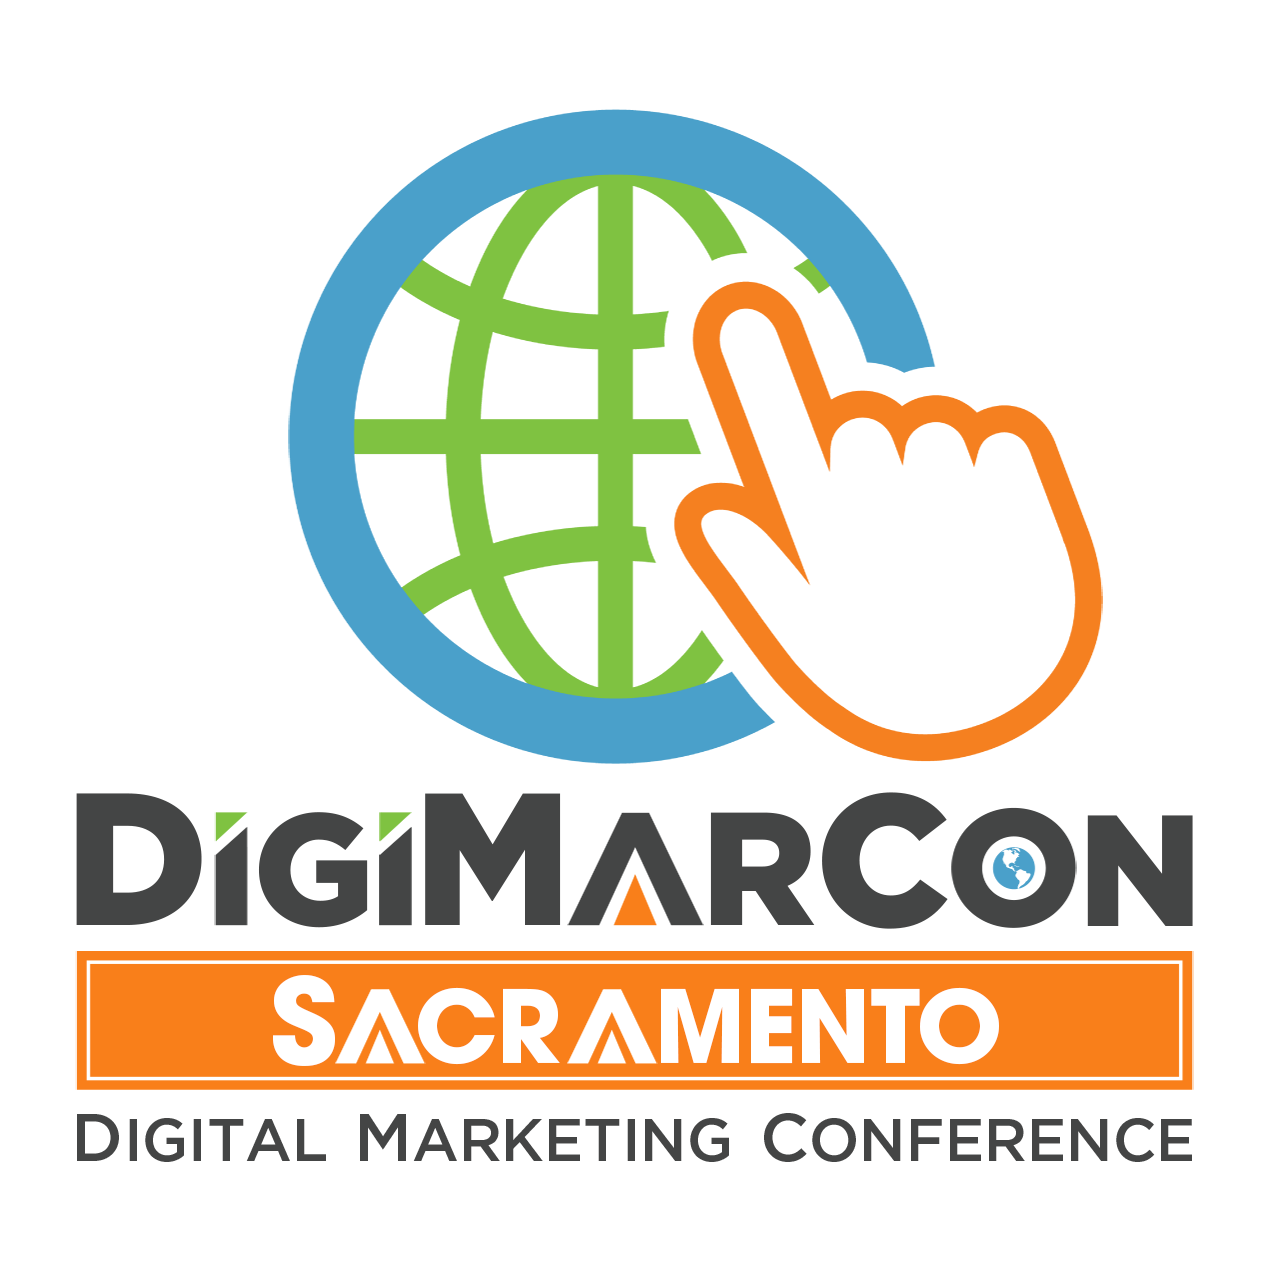 Sacramento Digital Marketing, Media & Advertising Conference